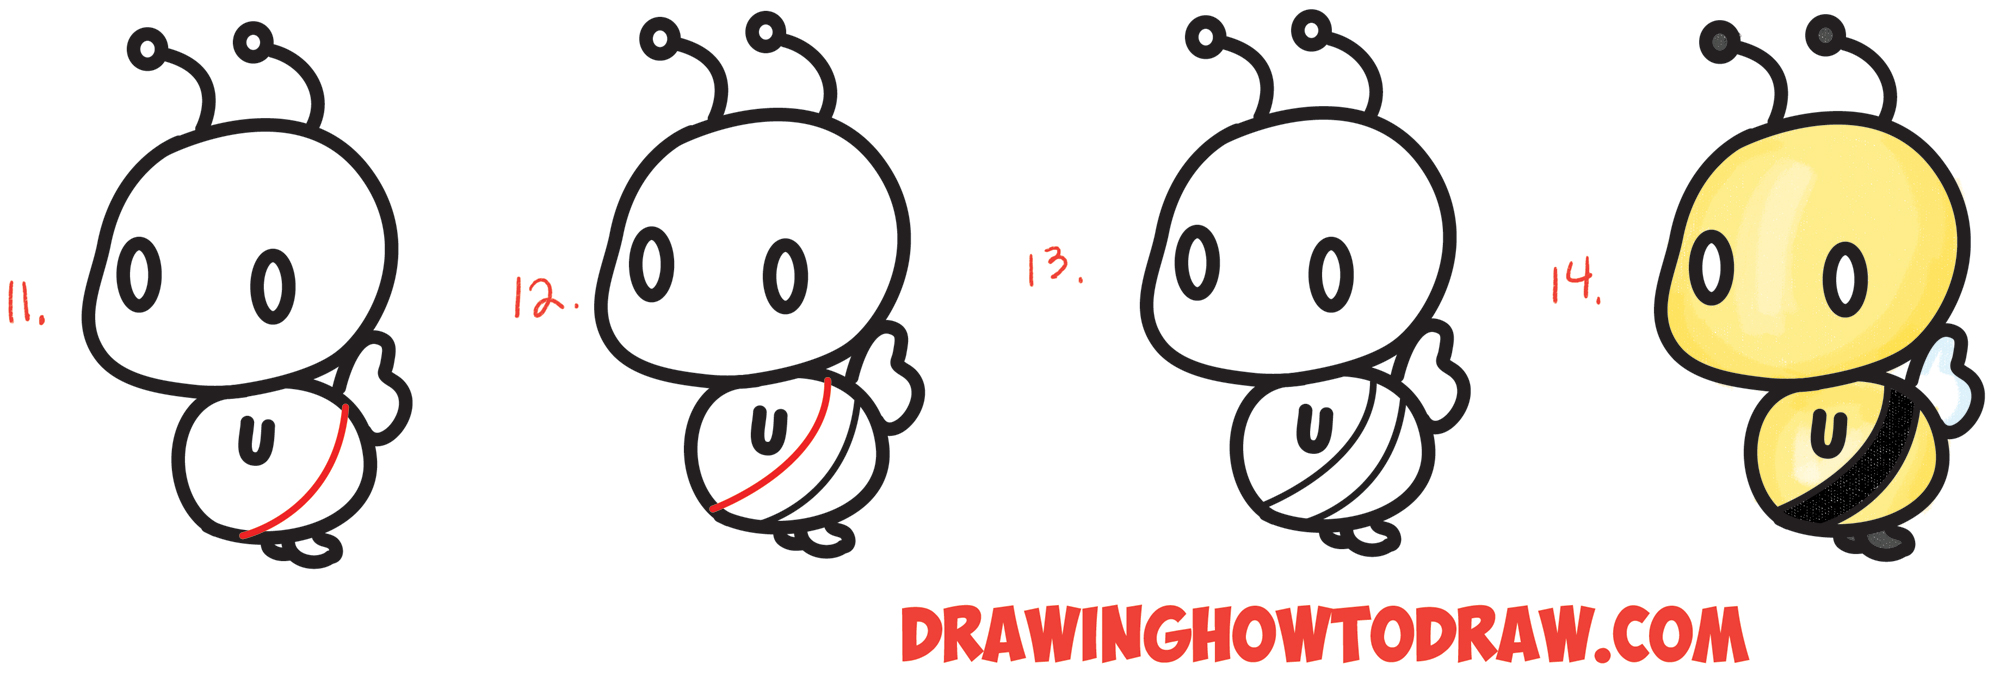 Learn How to Draw a Cute Chibi / Kawaii Cartoon #3 Shape Bumble Bee - Easy Step by Step Drawing Tutorial for Kids